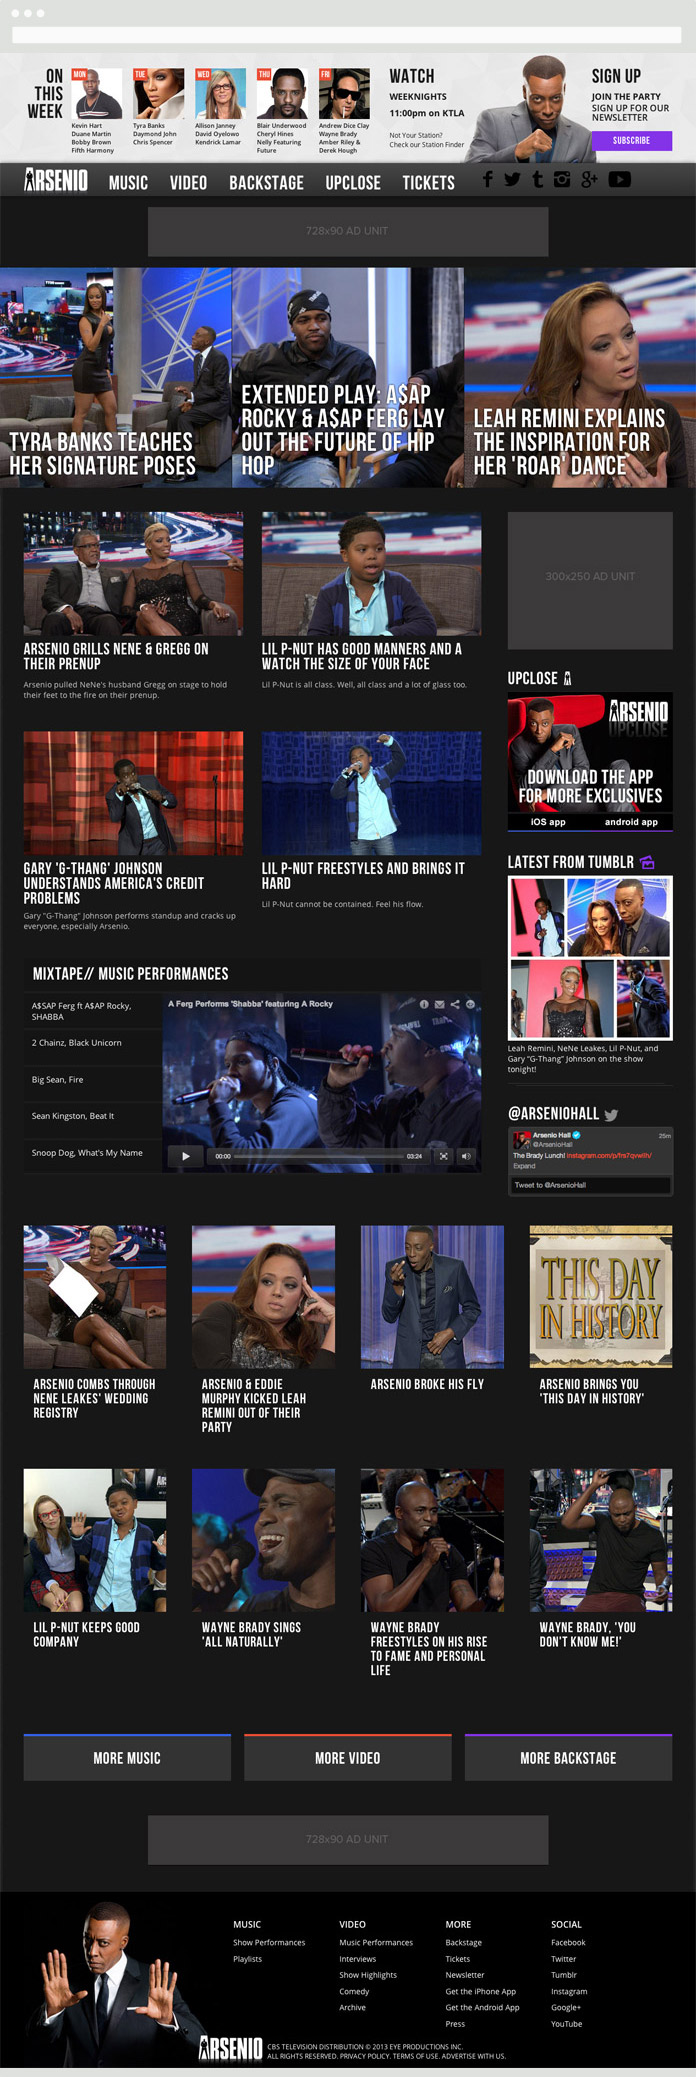 Image of the Arsenio Hall Homepage